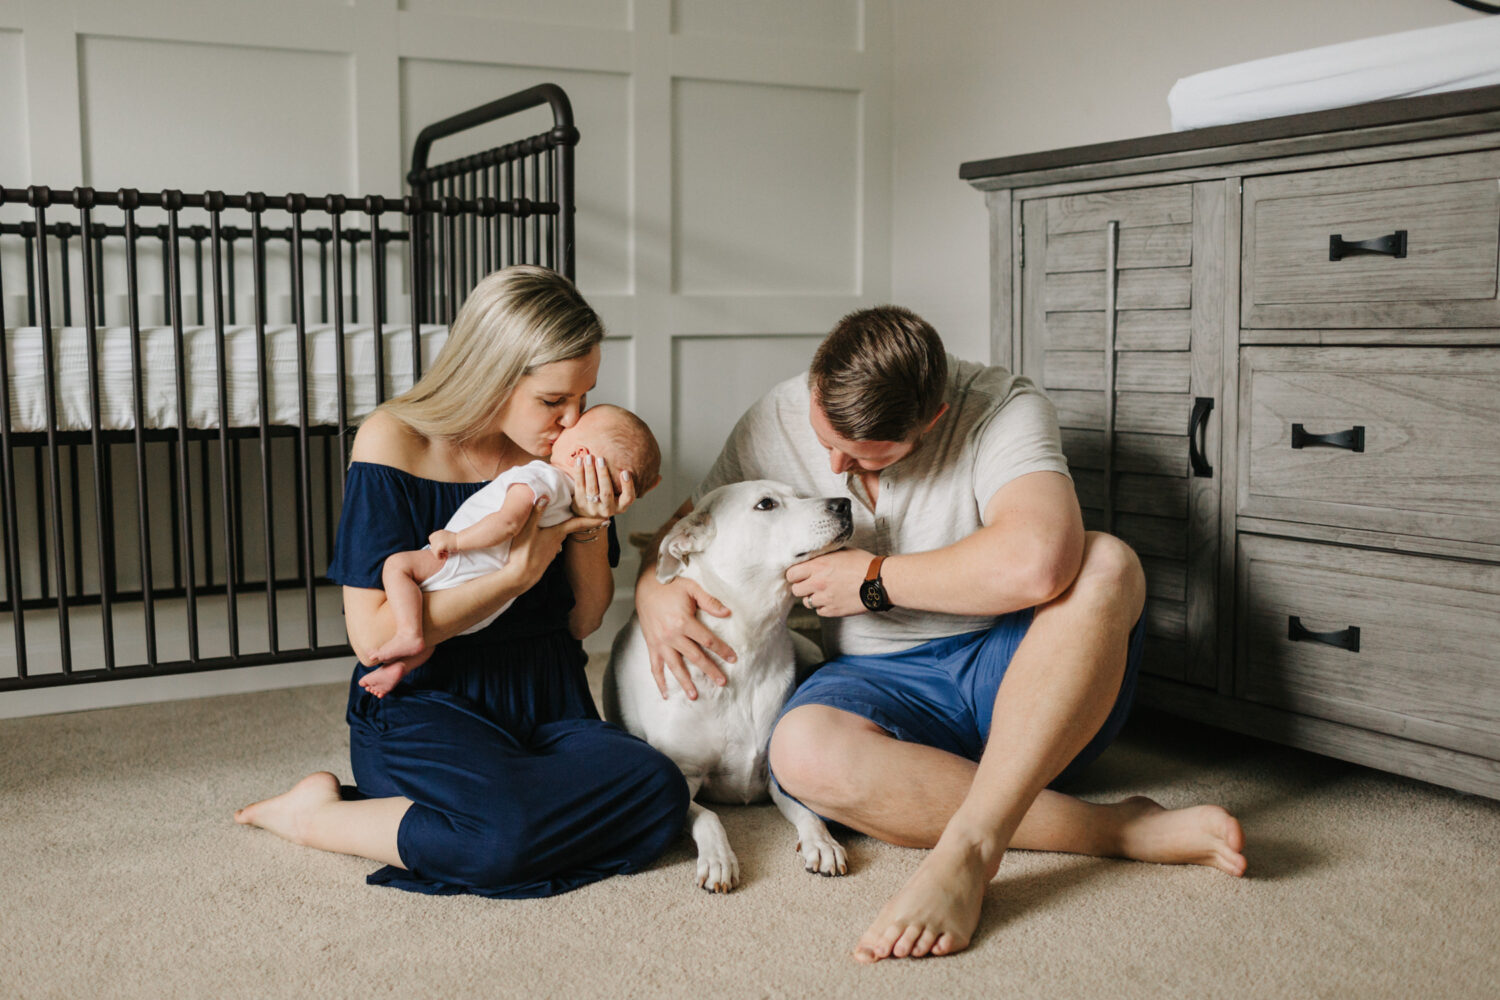 candid newborn photography with a dog